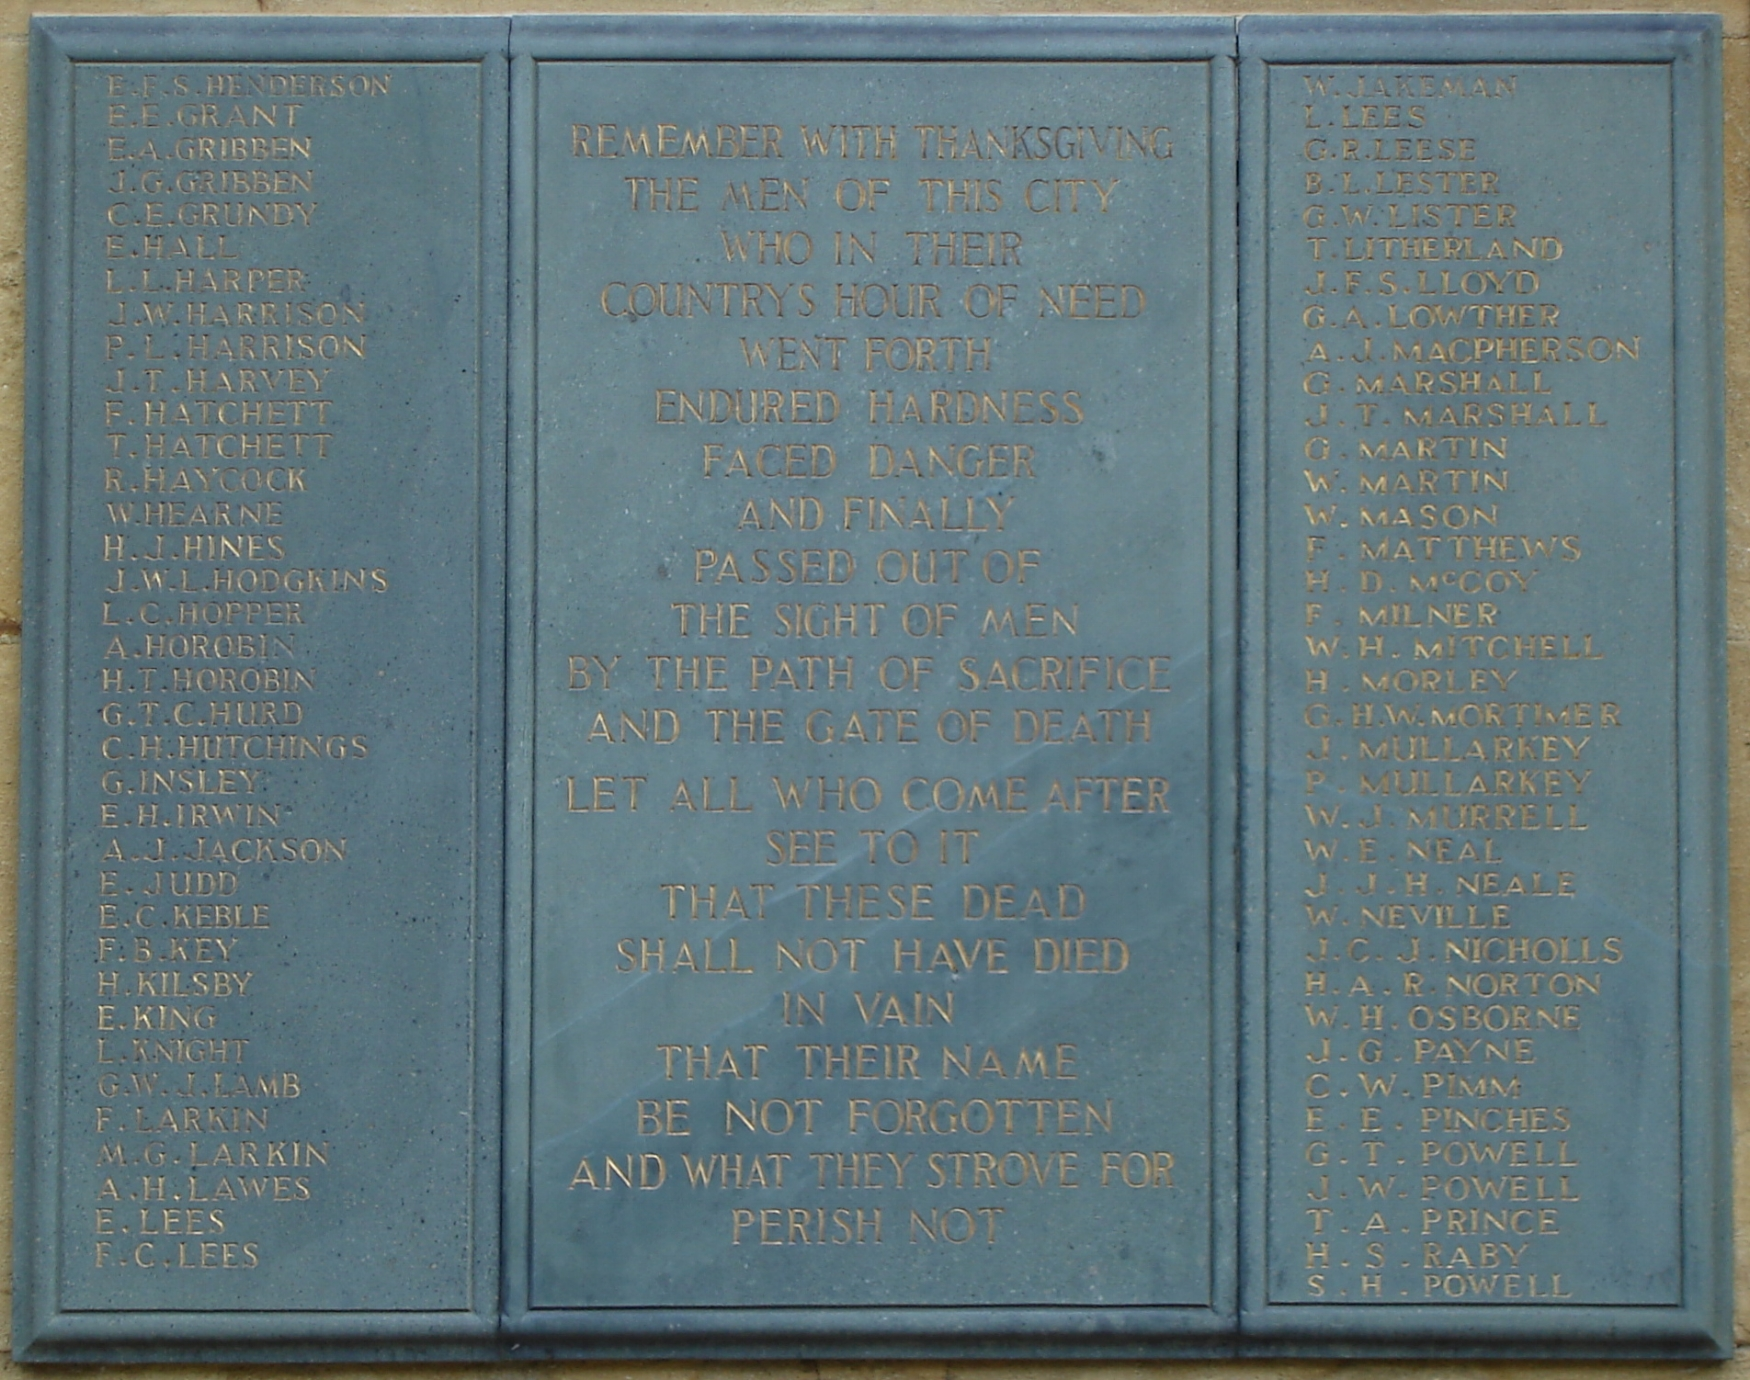 Panel on the Lichfield Remembrance Garden War Memorial.